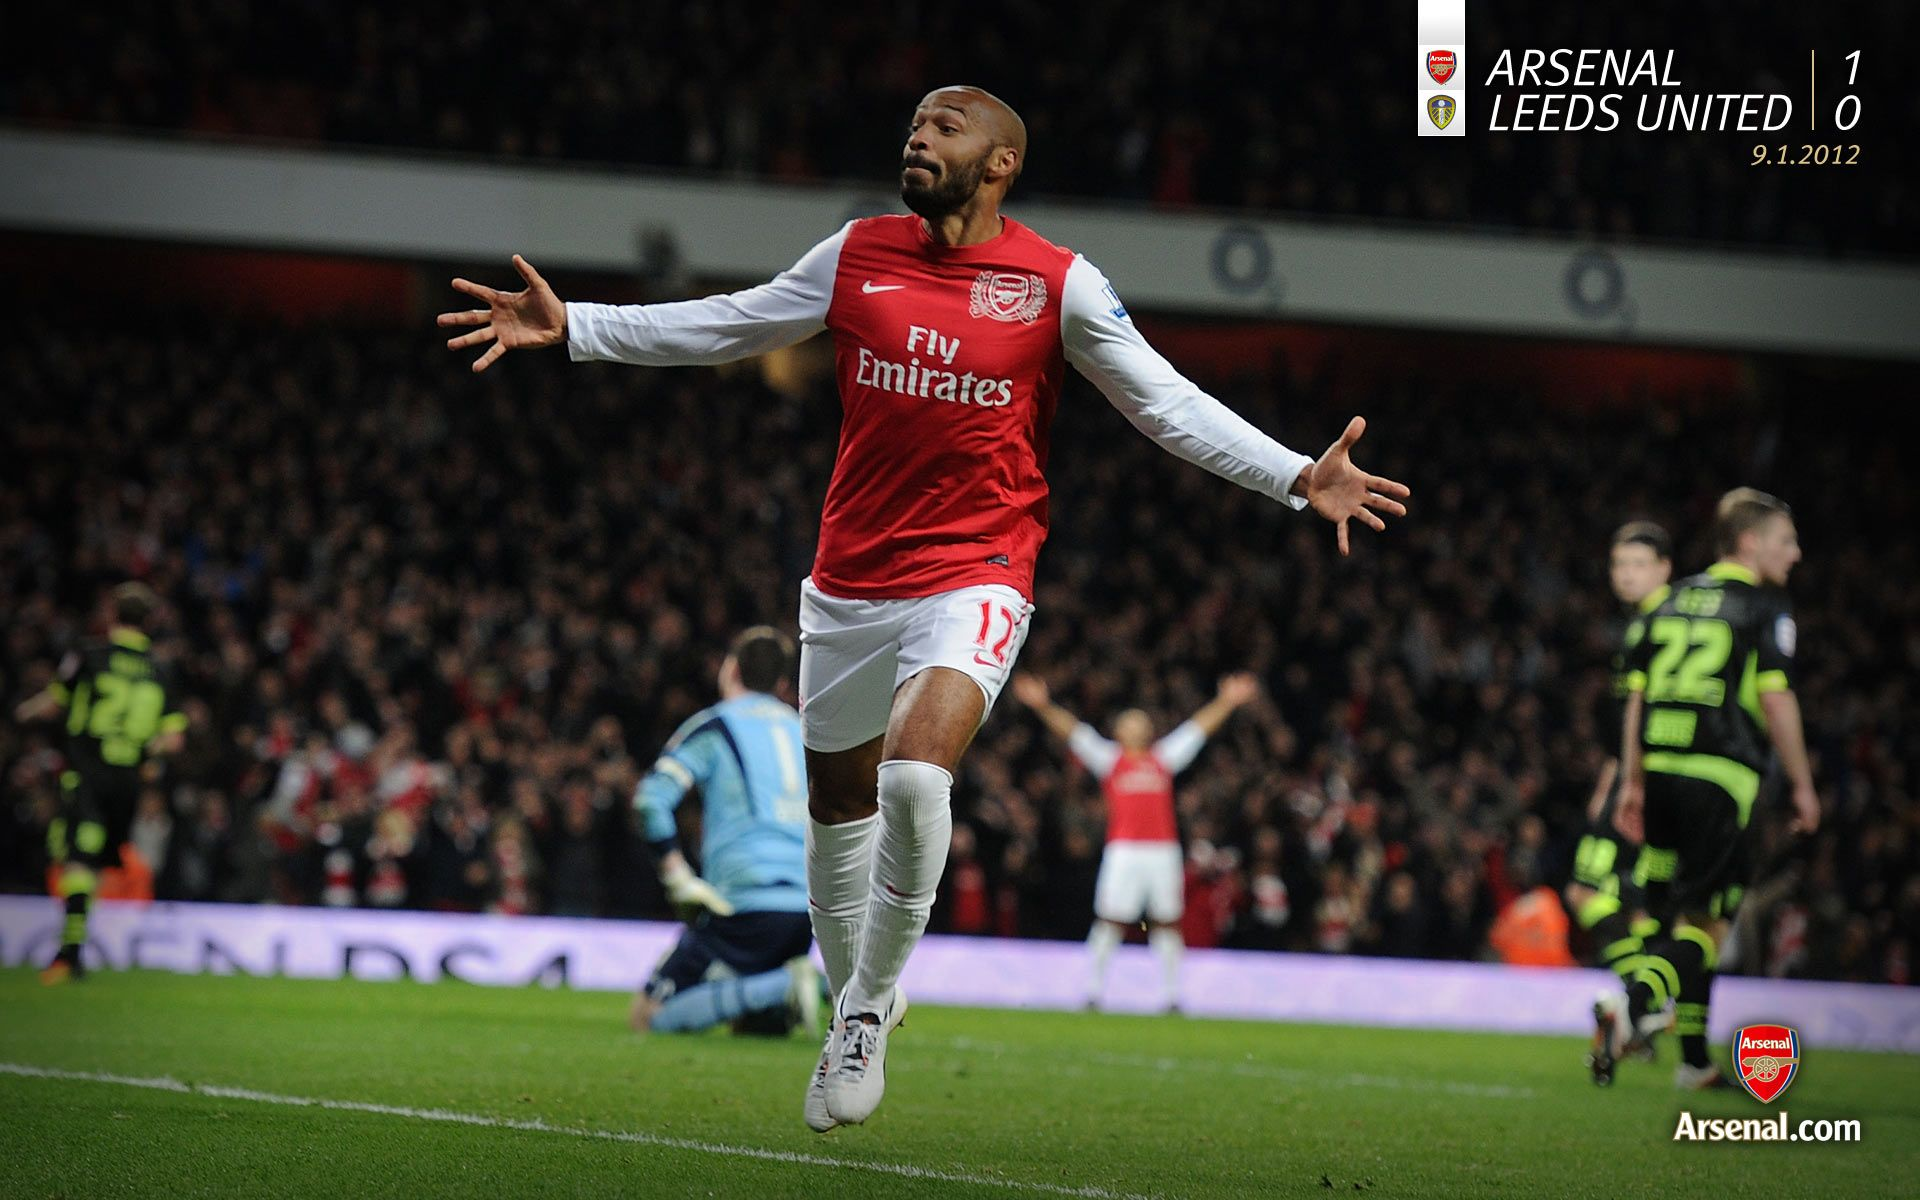 The legend 2nd debut goal my arsenal pinterest arsenal and scores voltagebd Image collections